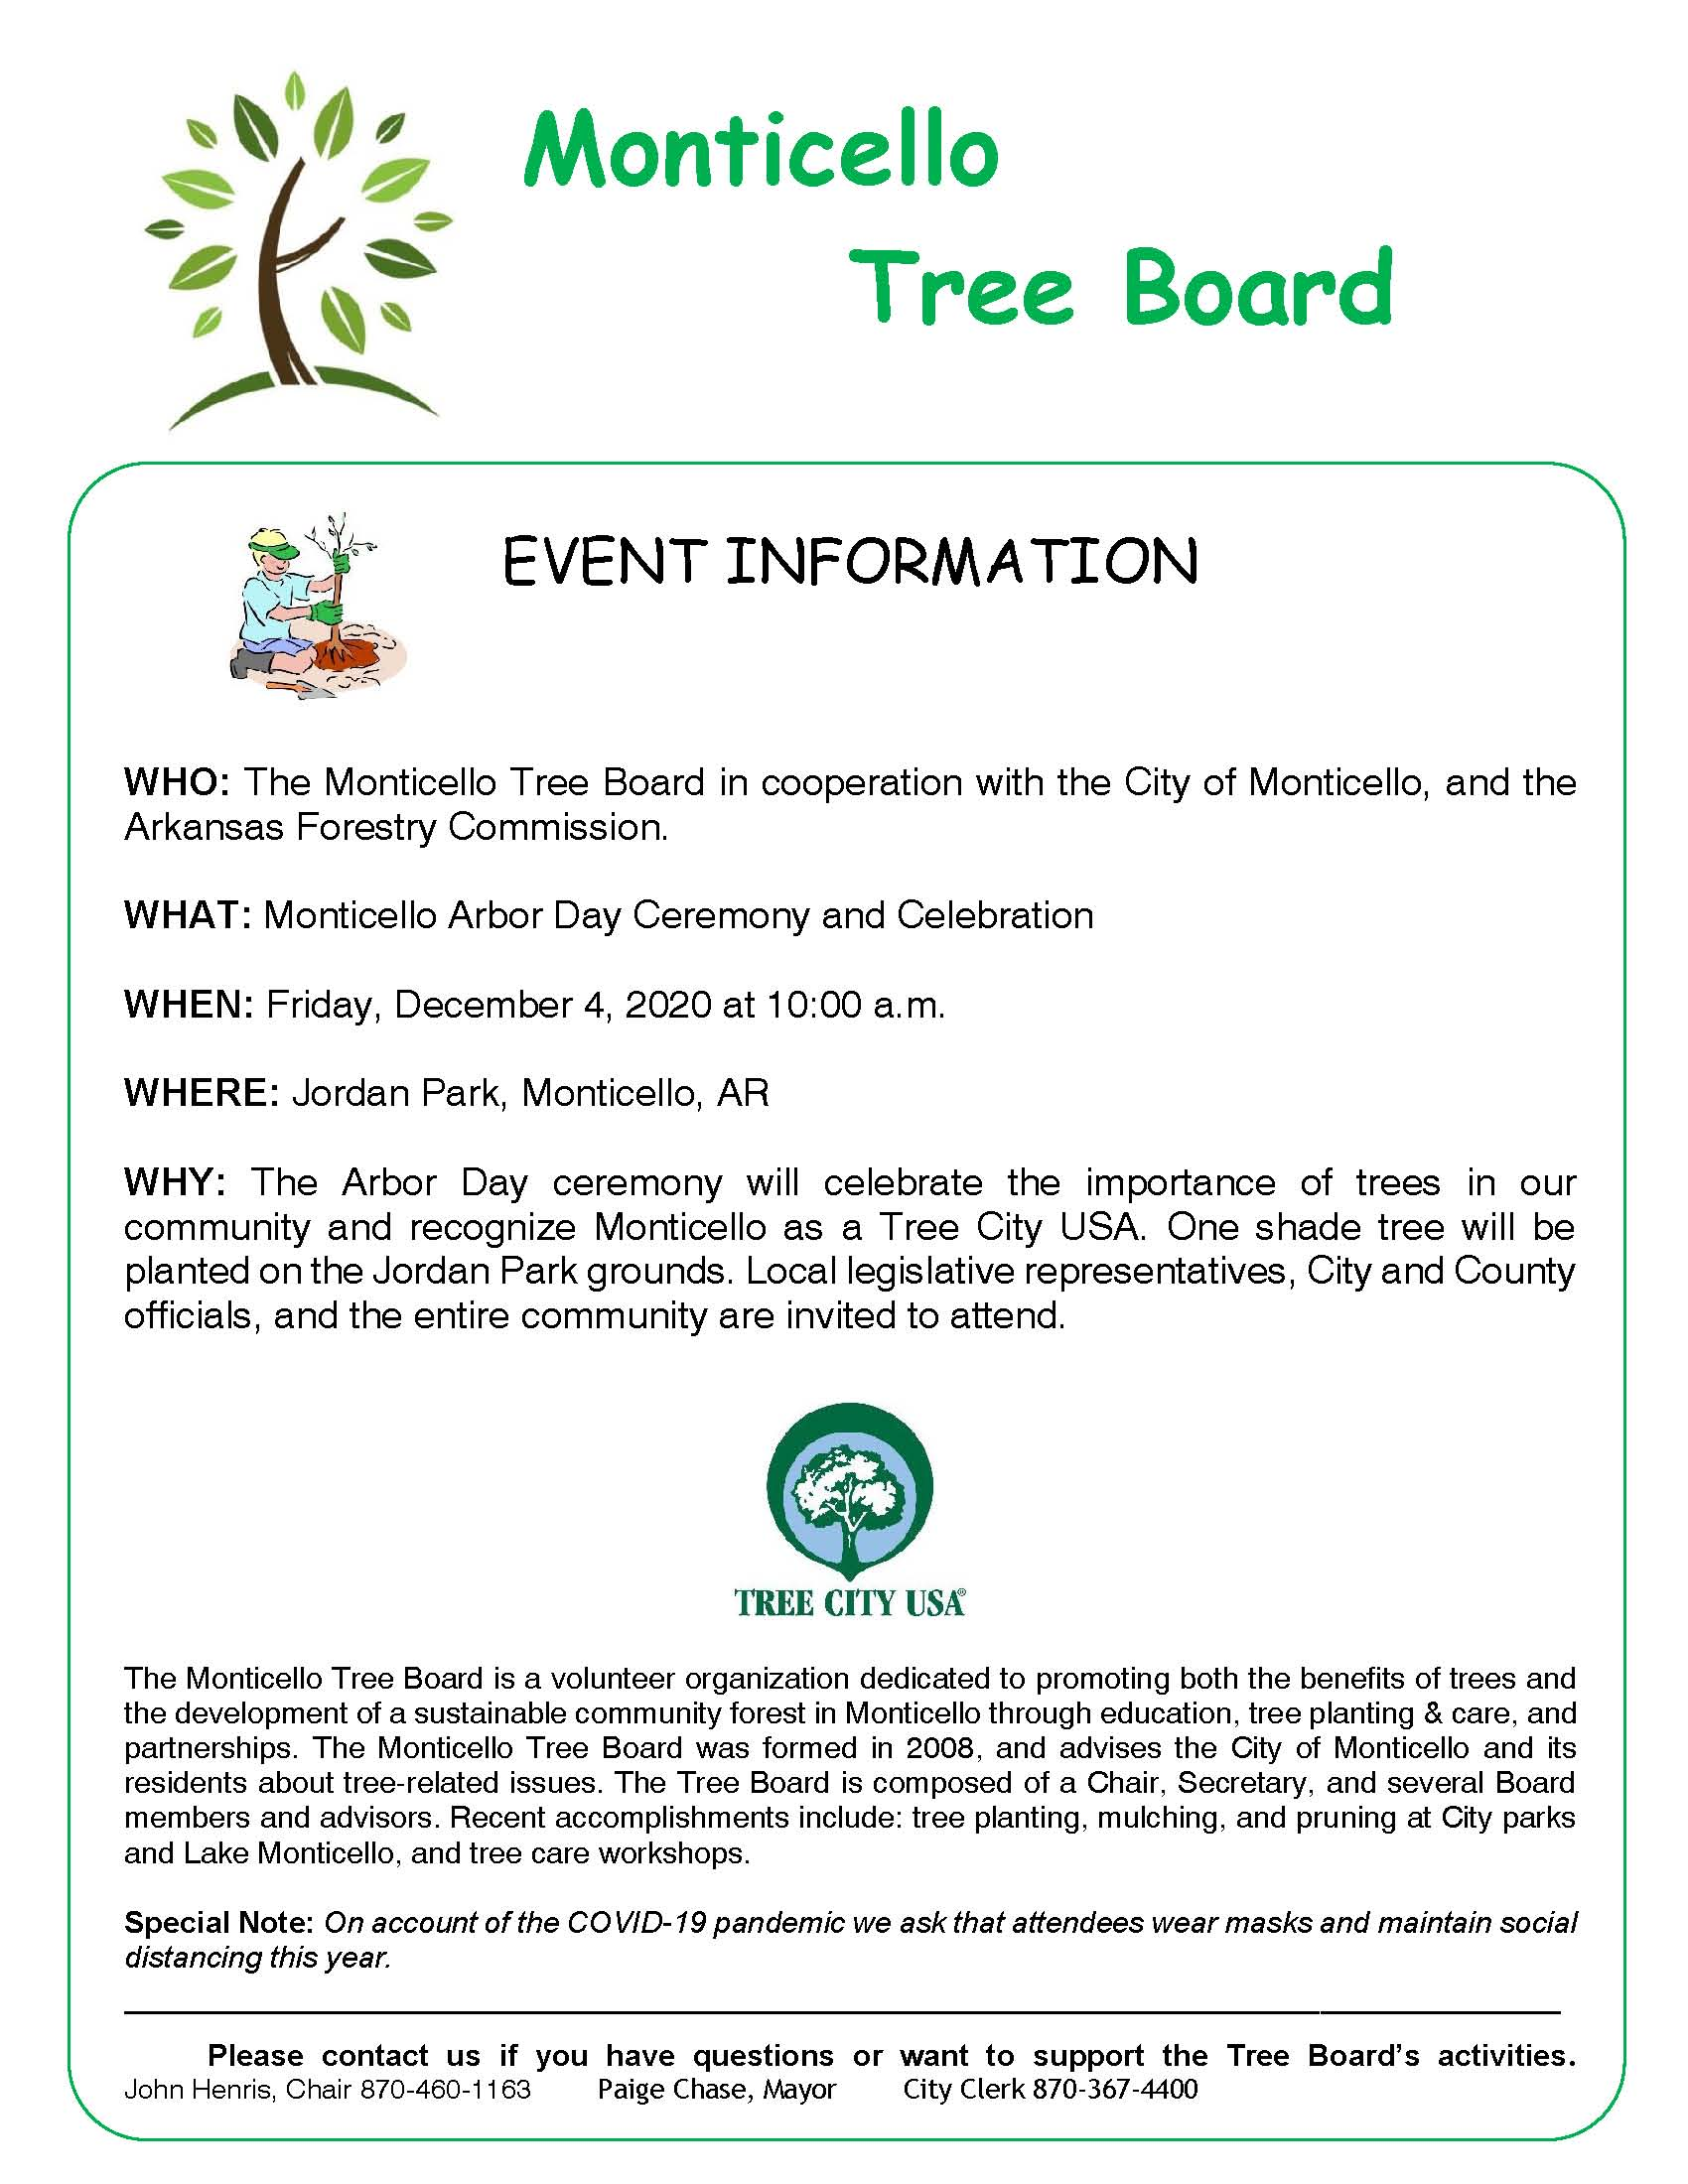 Monticello Arbor Day Announce 2020 Draft Revised 24 November